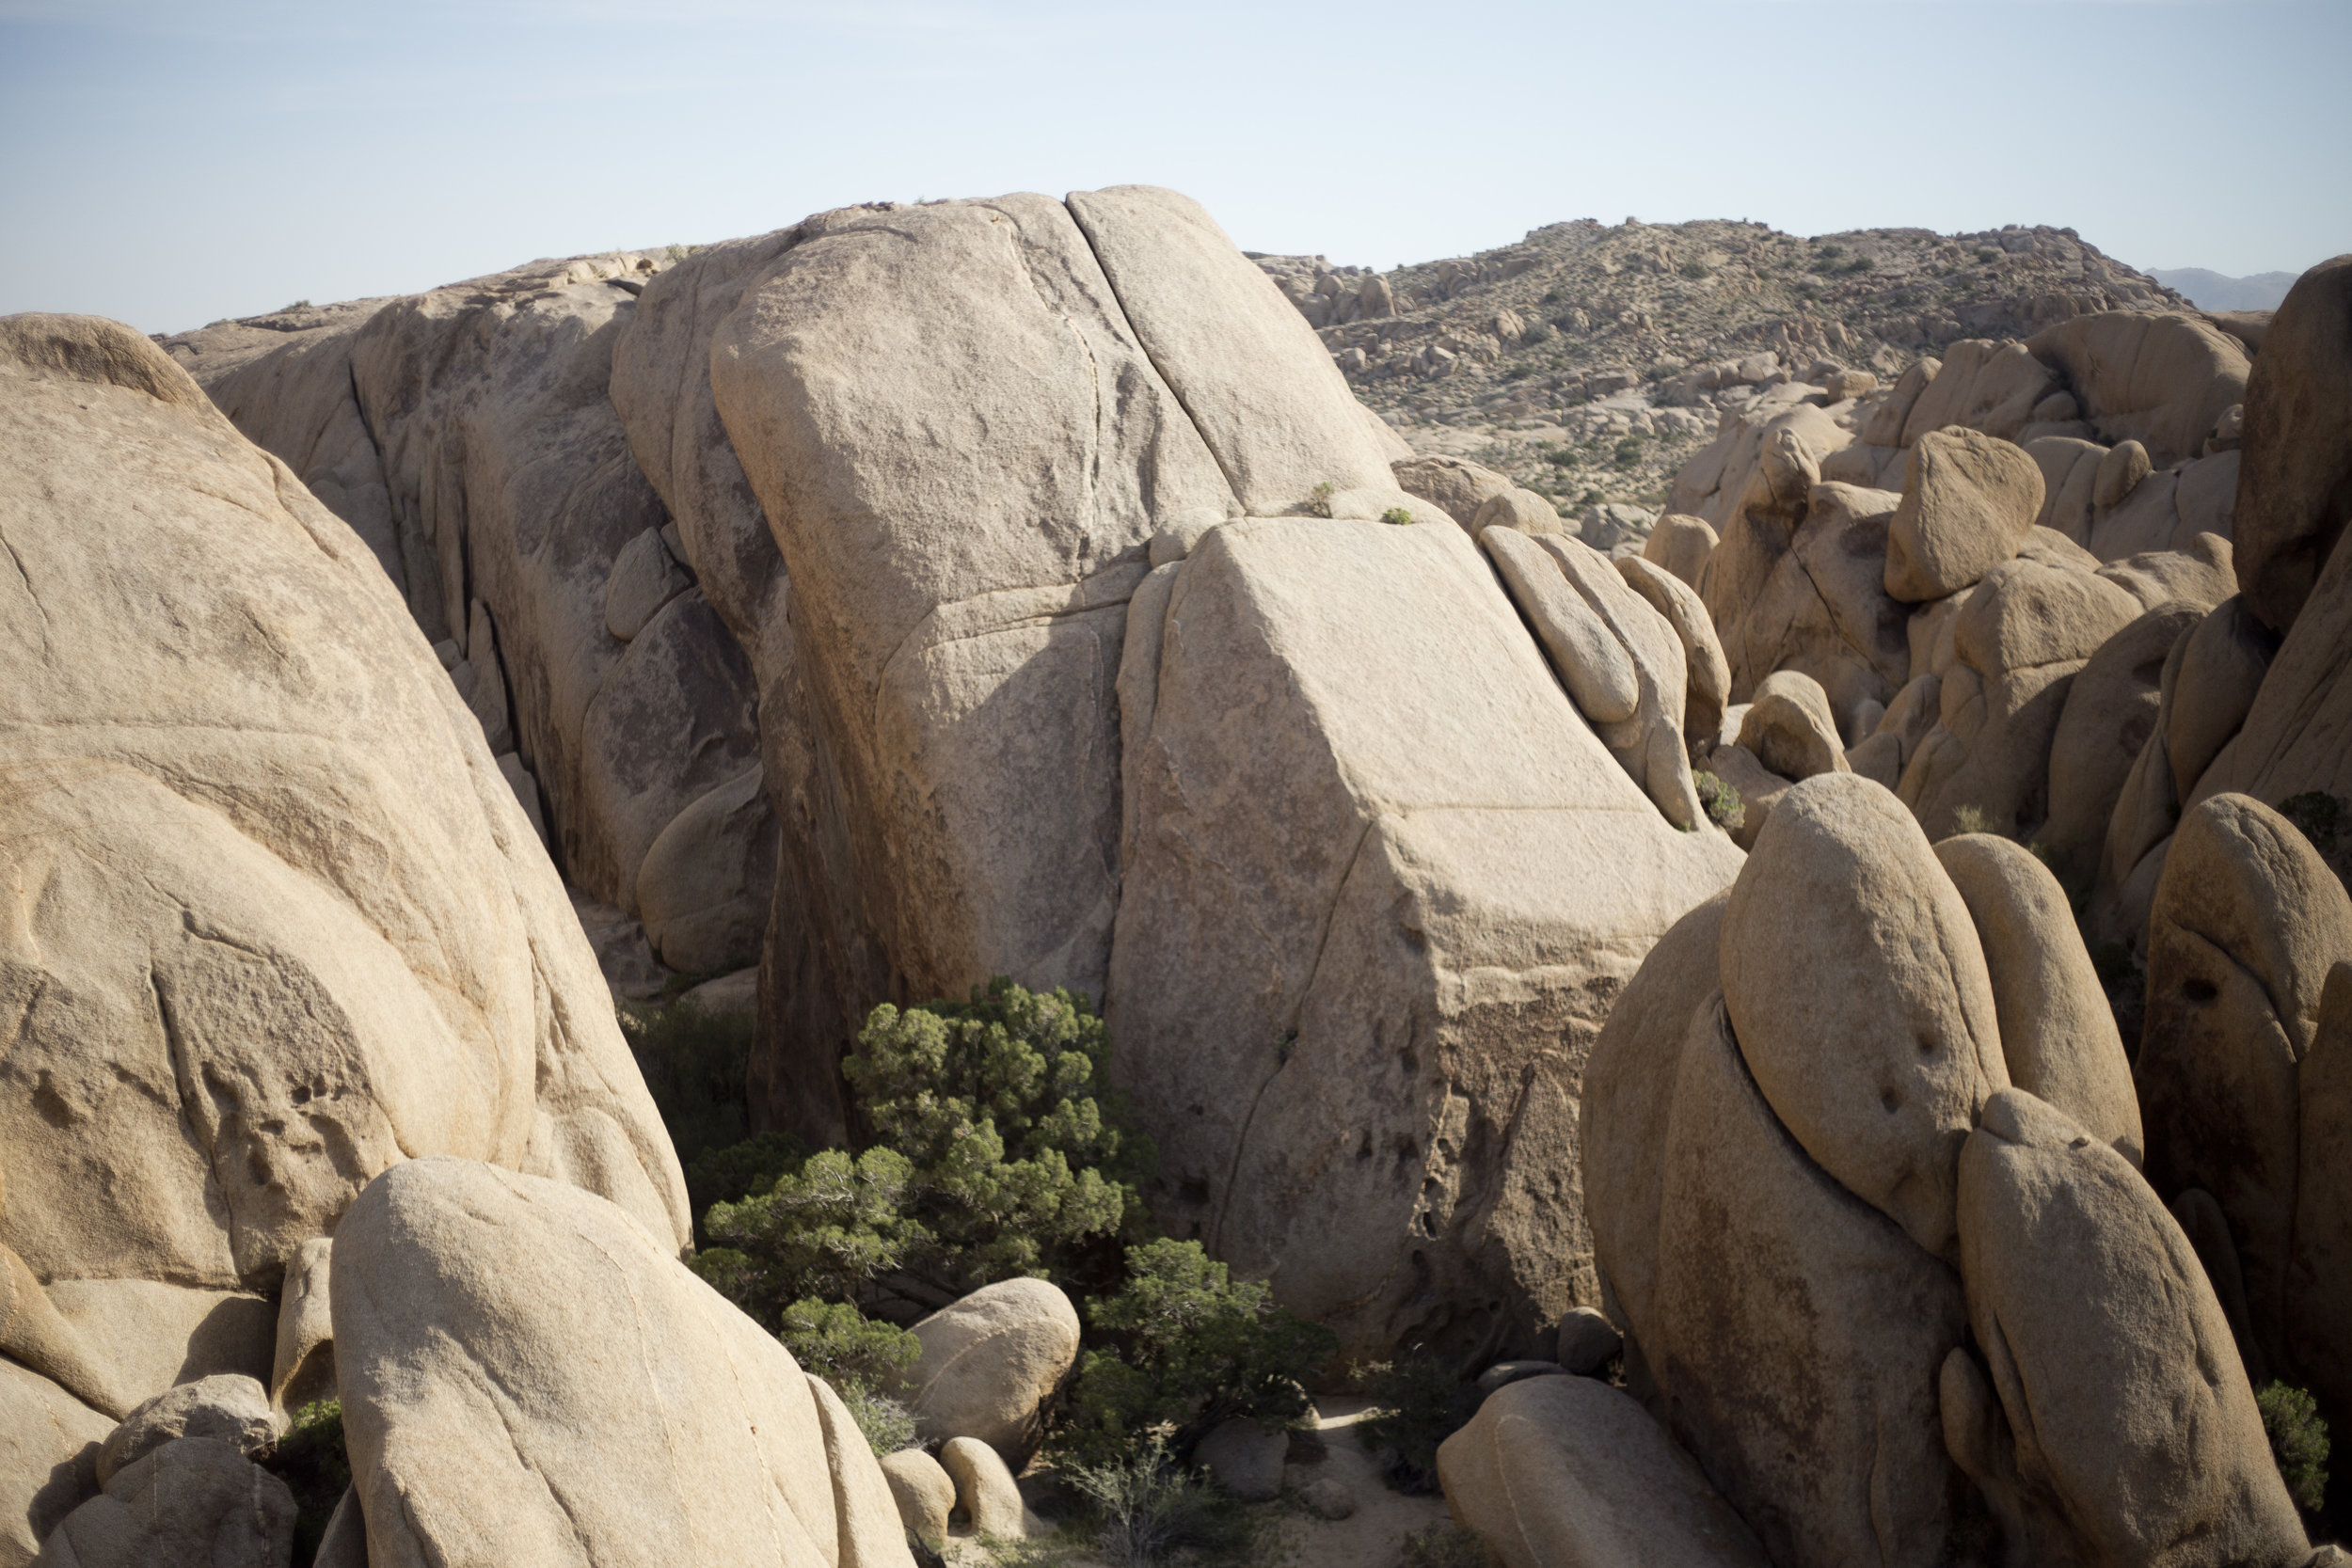 03.23.16_SB2016Day5JoshuaTree002.jpg